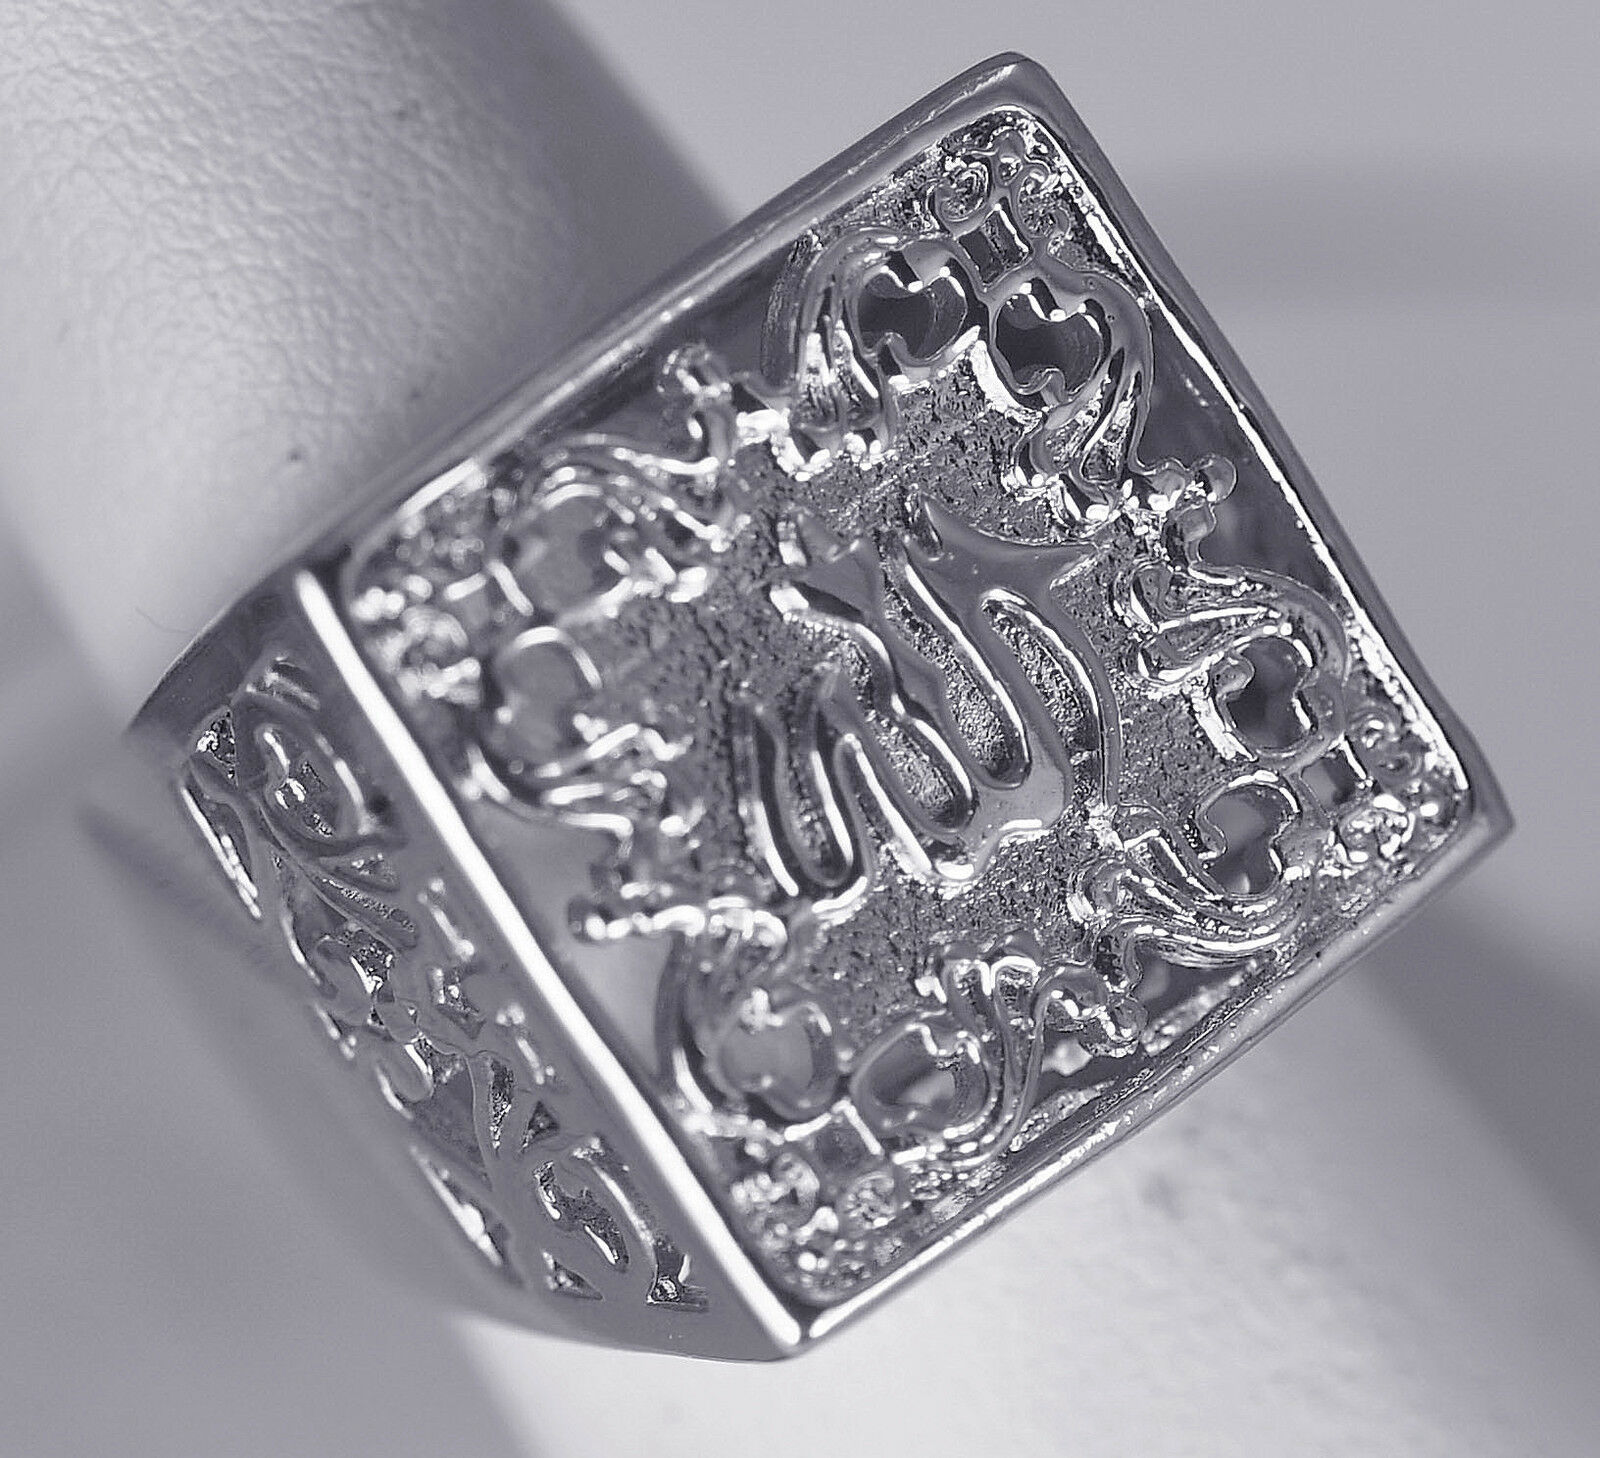 Allah Islamic Muslim Real Authentic Sterling Silver Arabic Ring Islam Jewelry